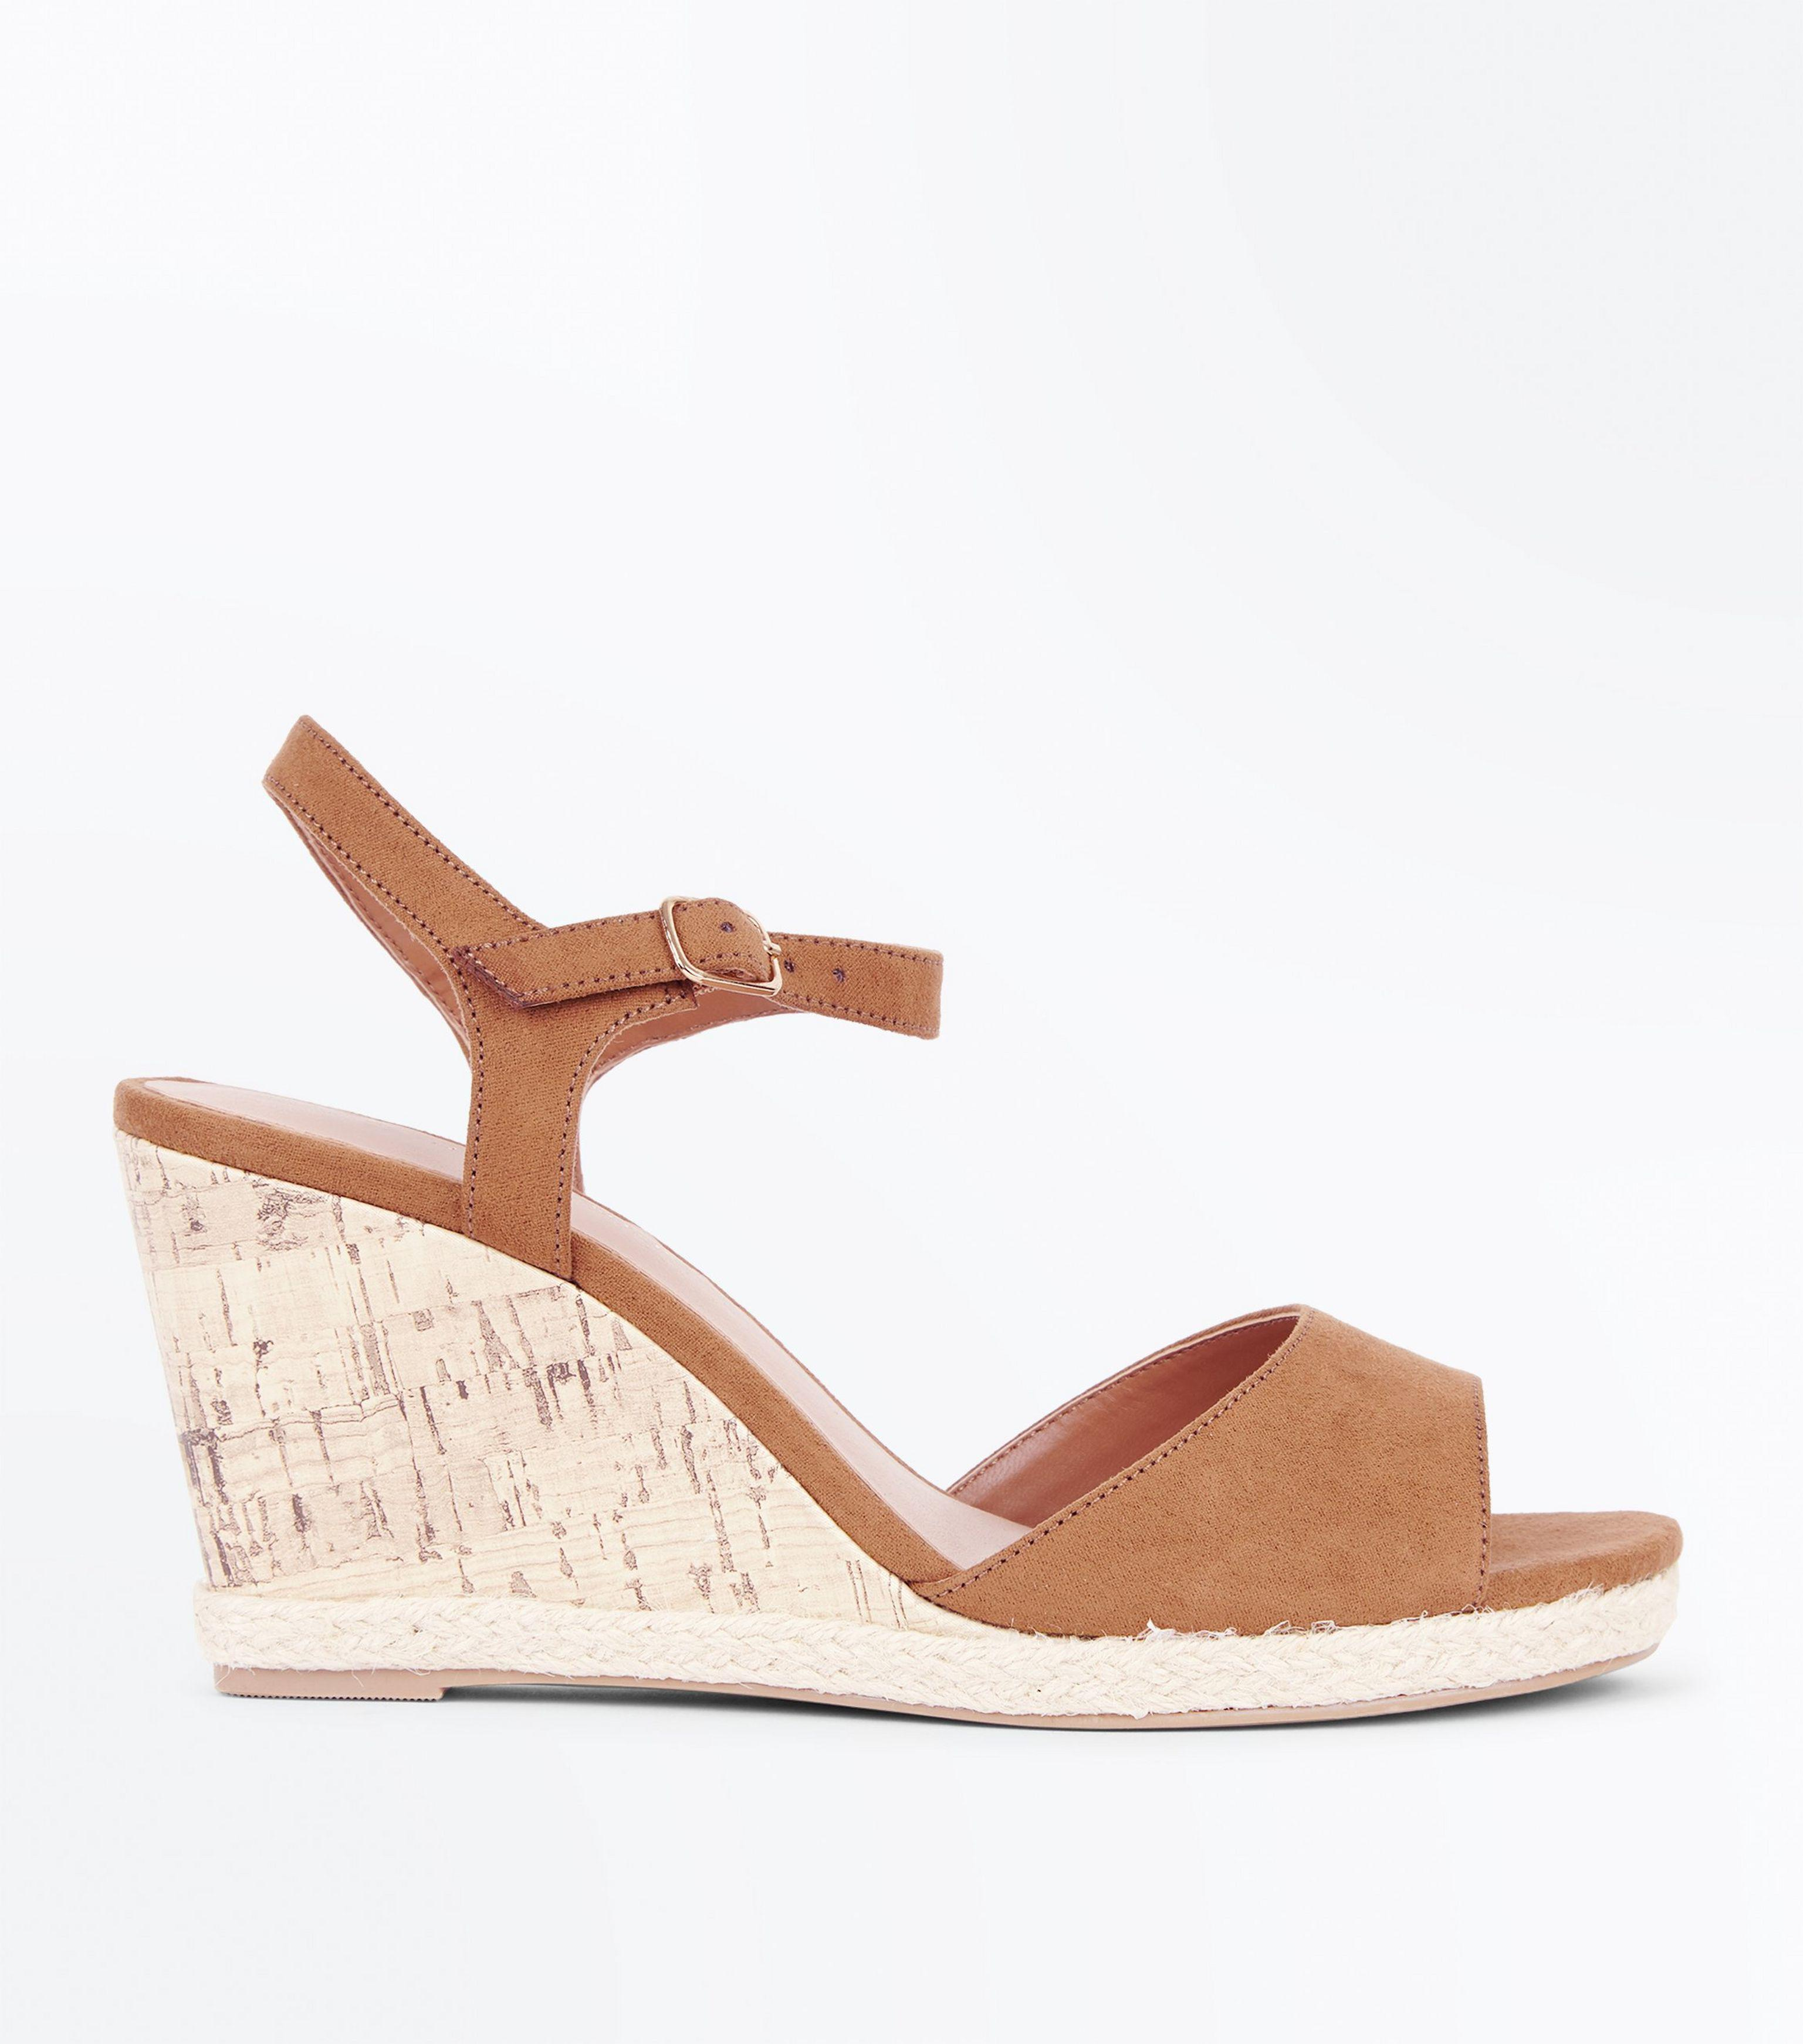 81f6d7afc0f New Look Wide Fit Tan Suedette Peep Toe Wedges in Brown - Lyst